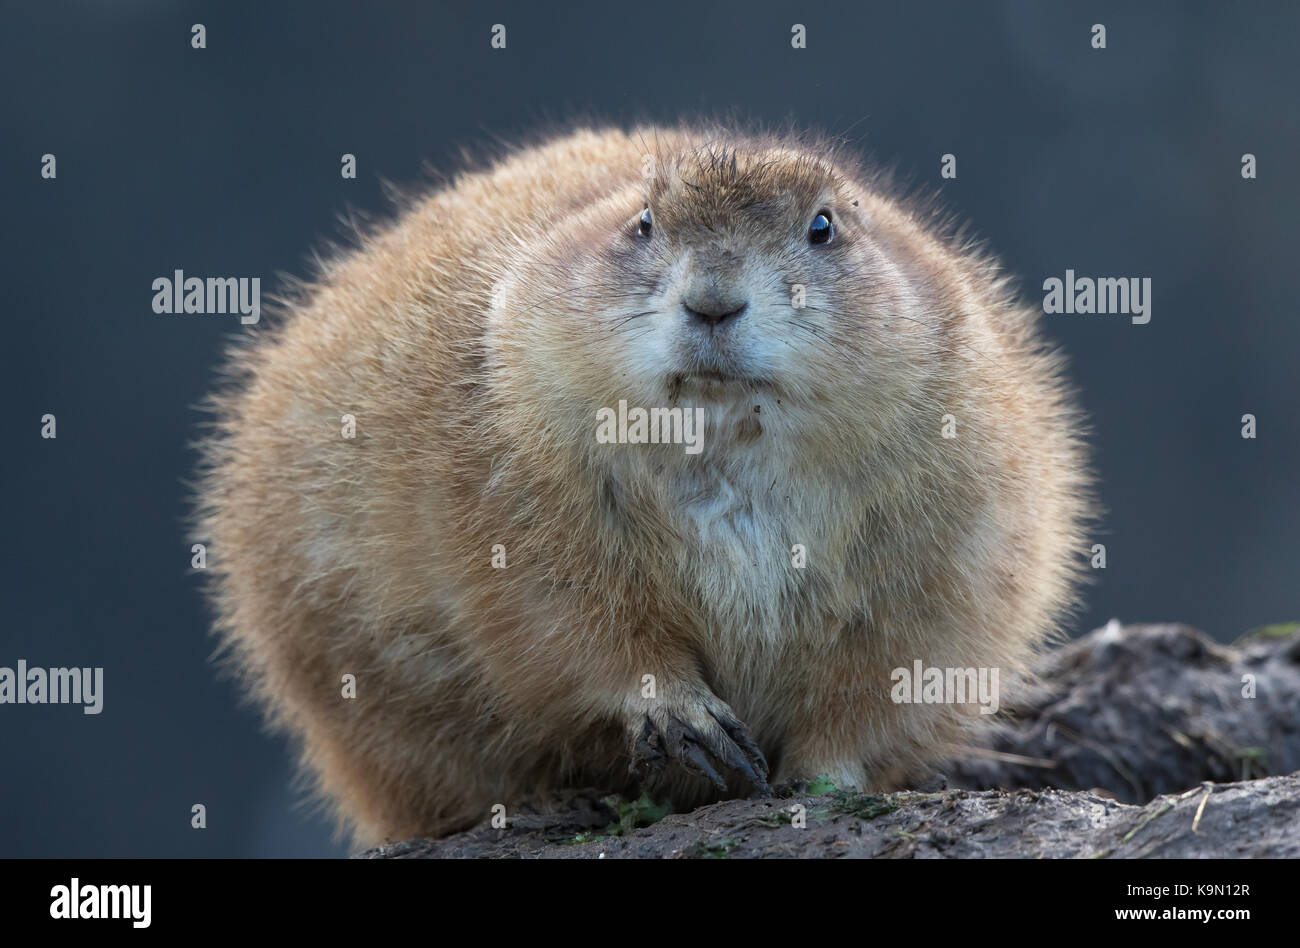 Most Inspiring Super Chubby Adorable Dog - tight-close-up-of-chubby-cute-prairie-dog-cynomys-sat-by-muddy-burrow-K9N12R  Trends_864899  .jpg